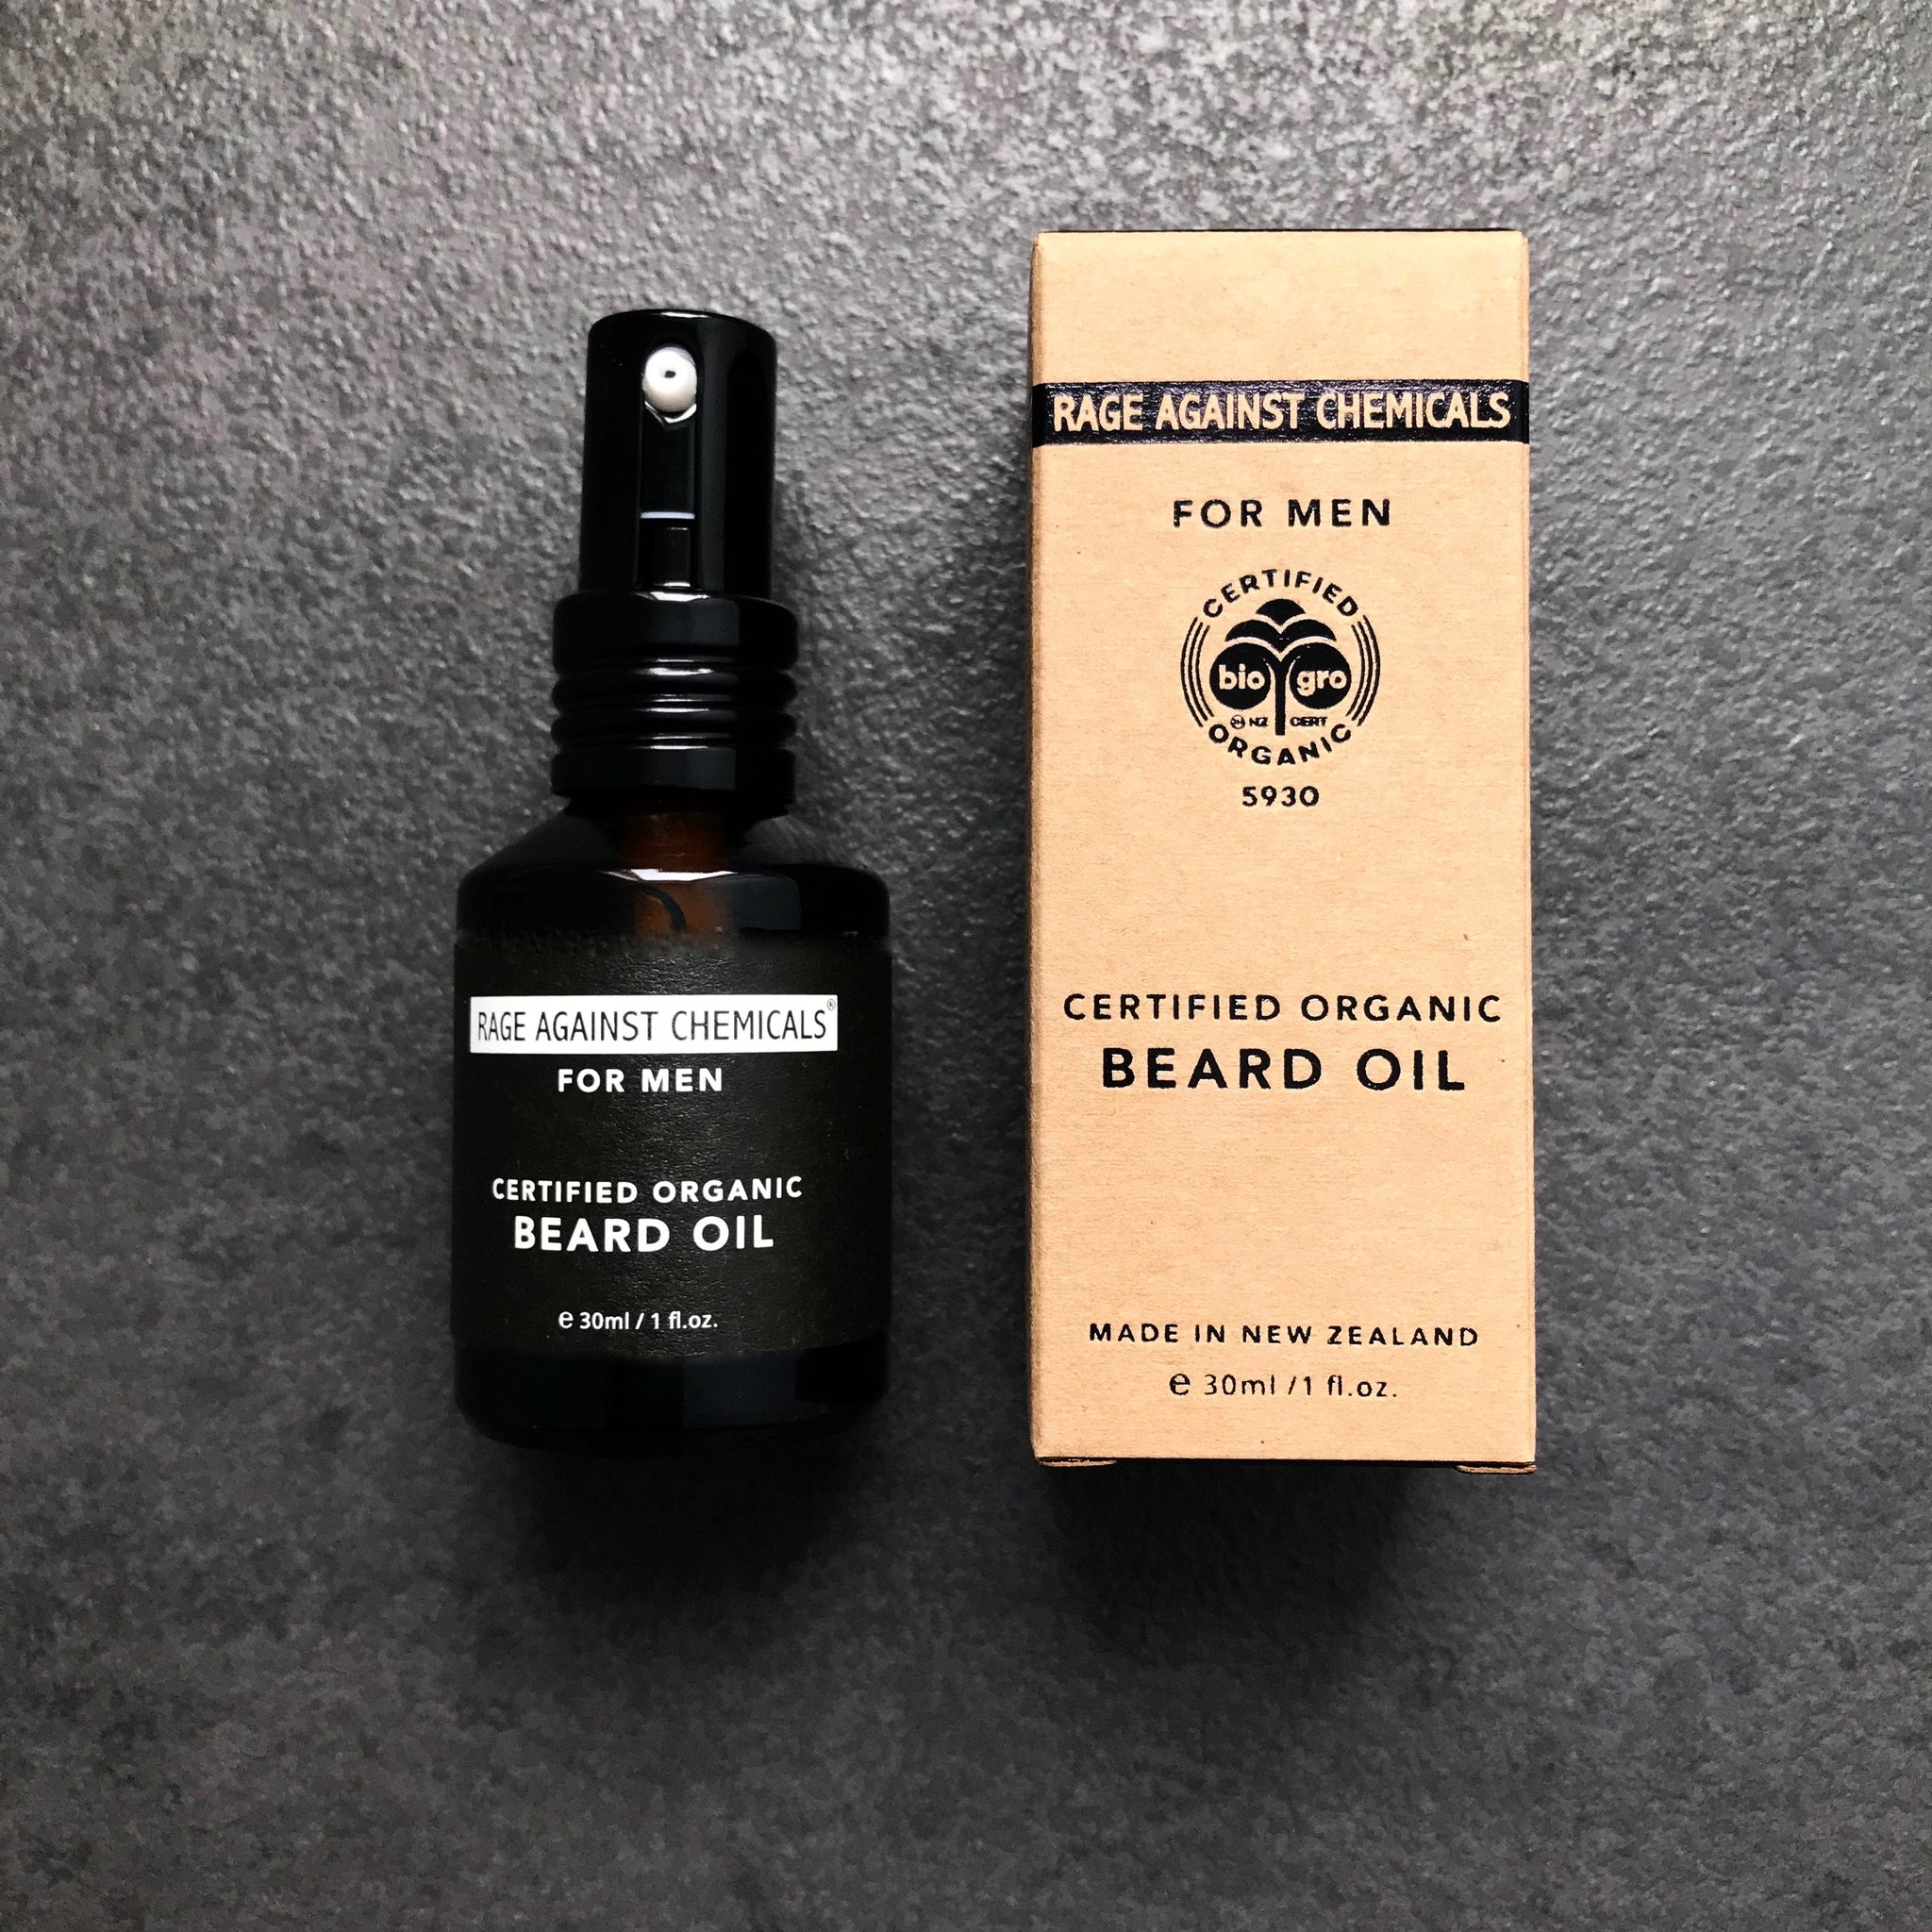 Beard Oil - Certified Organic - Rage Against Chemicals - Includes Beard soap and comb.